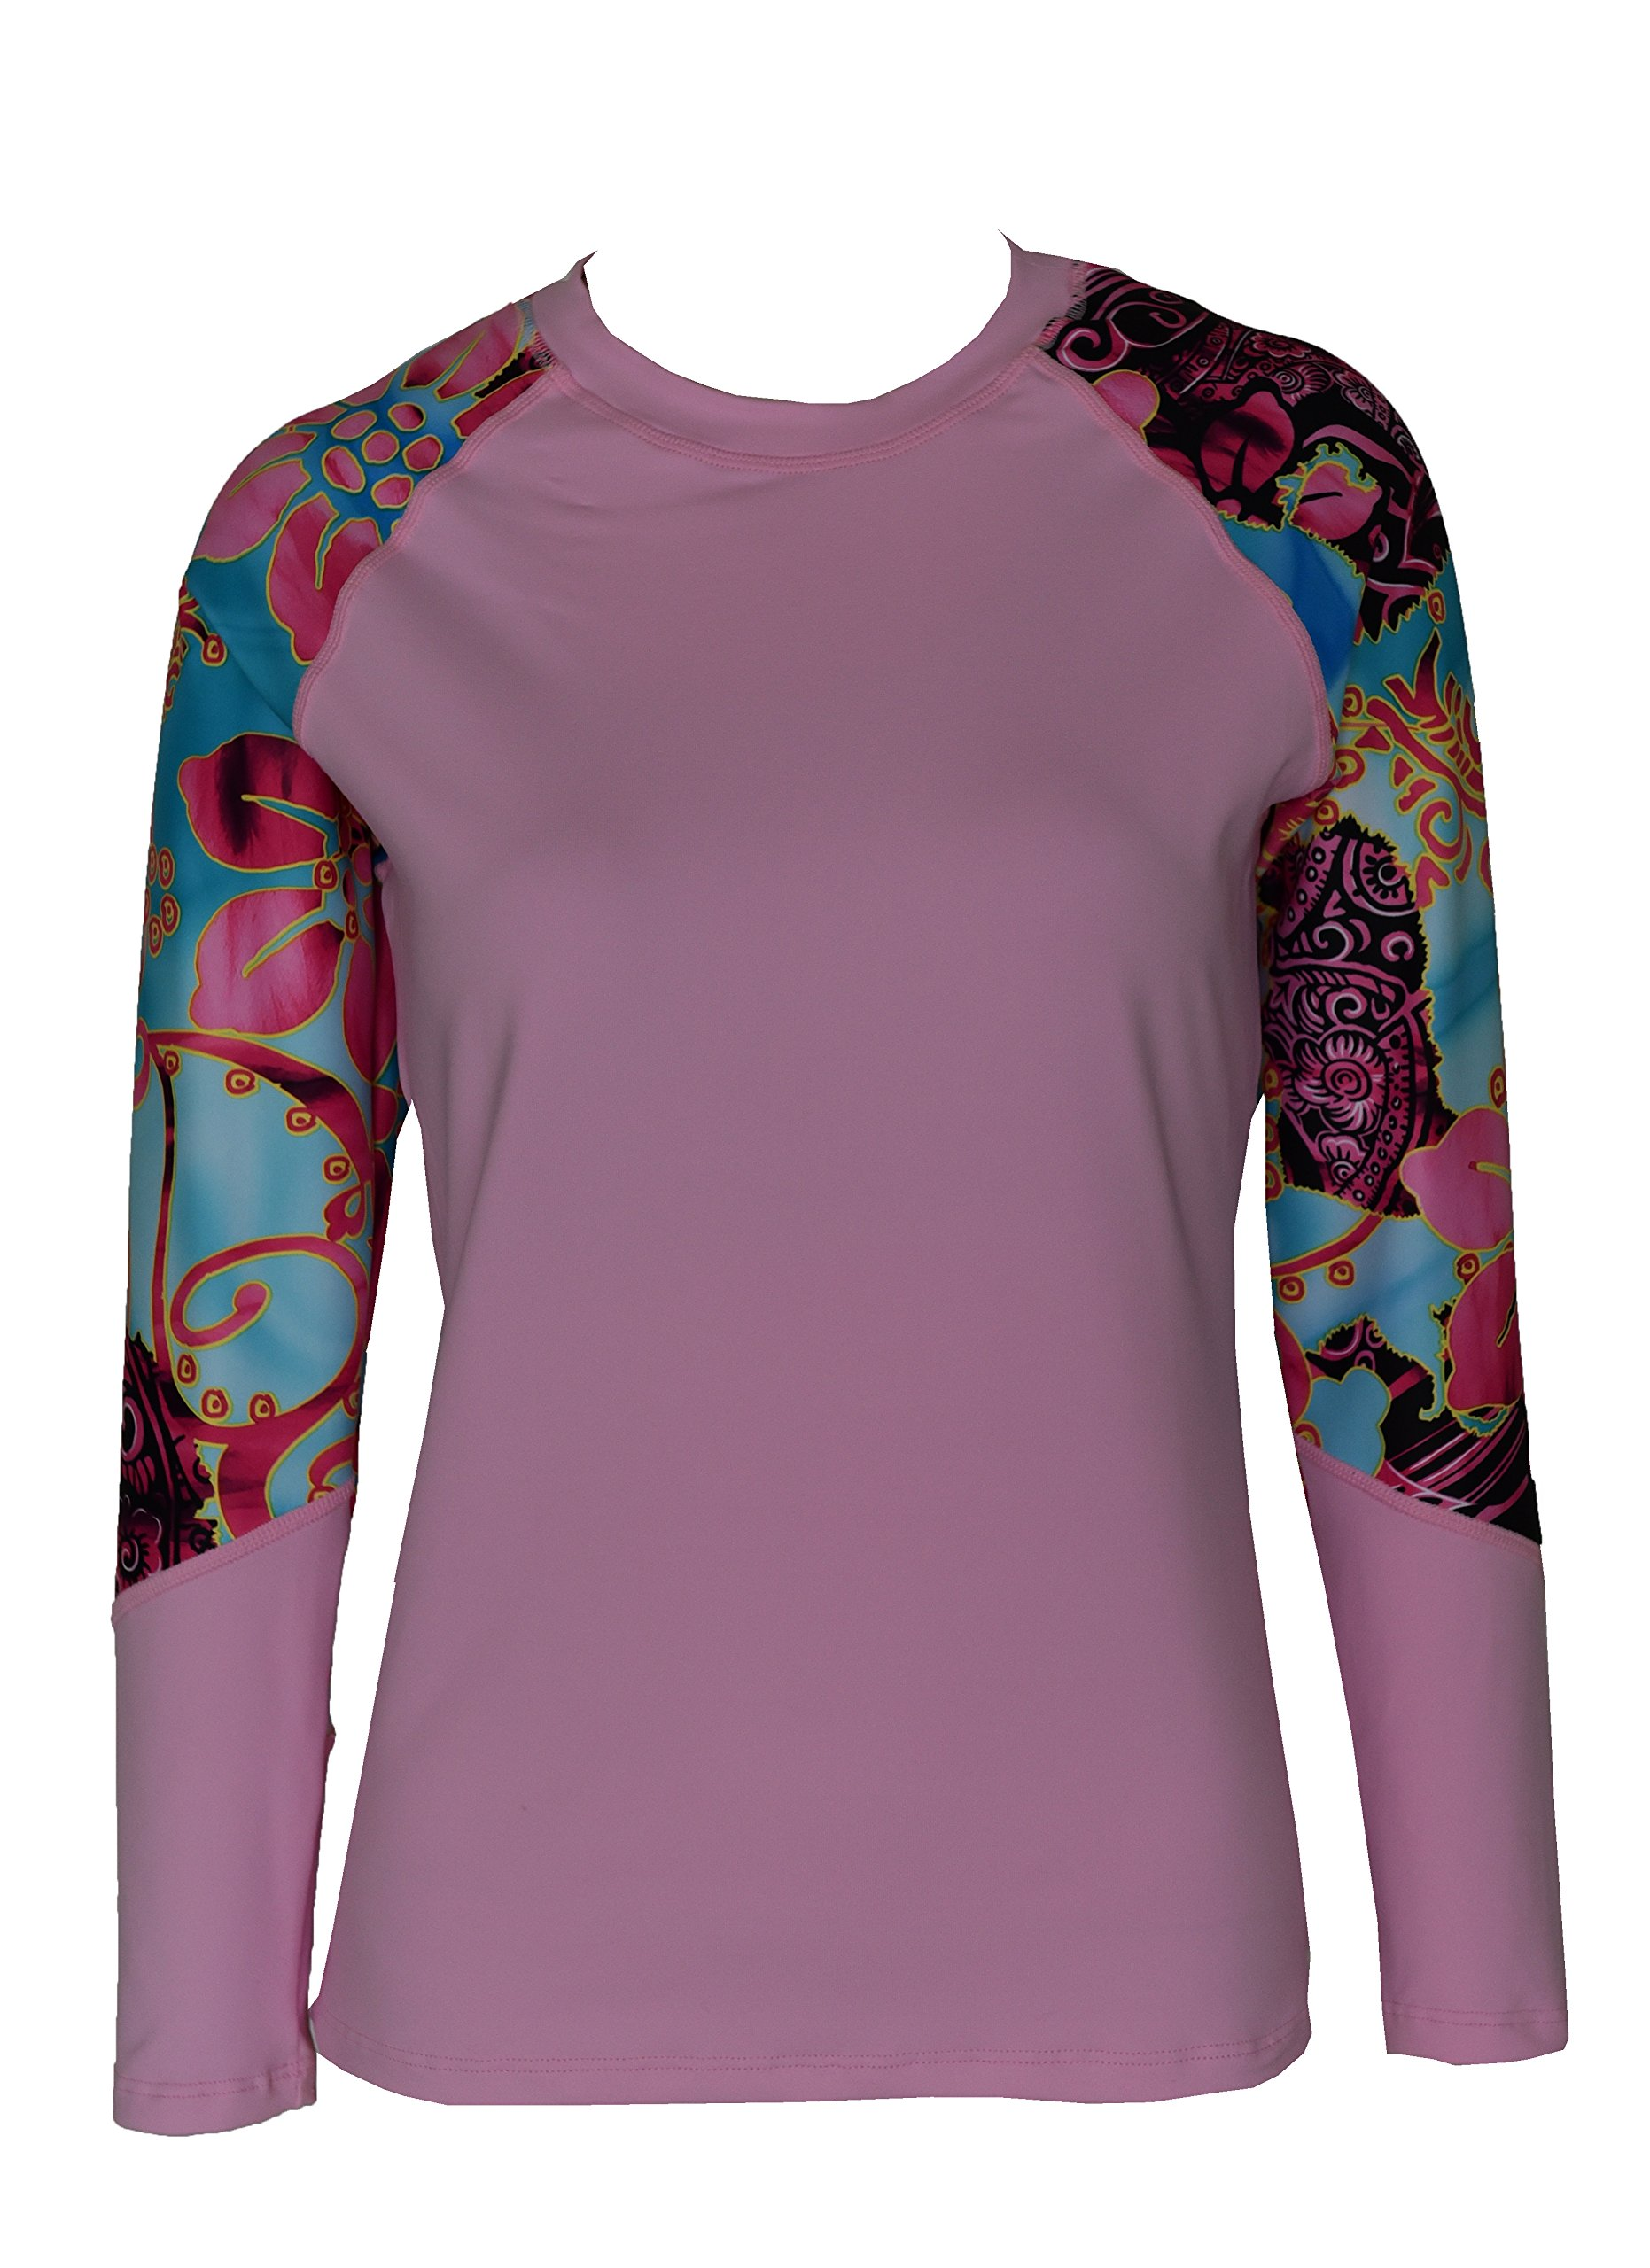 Private Island Hawaii UV Women Rash Guard Swim Yoga Active Workout Long Sleeve (S, PwSBP-RSRGT) by Private Island